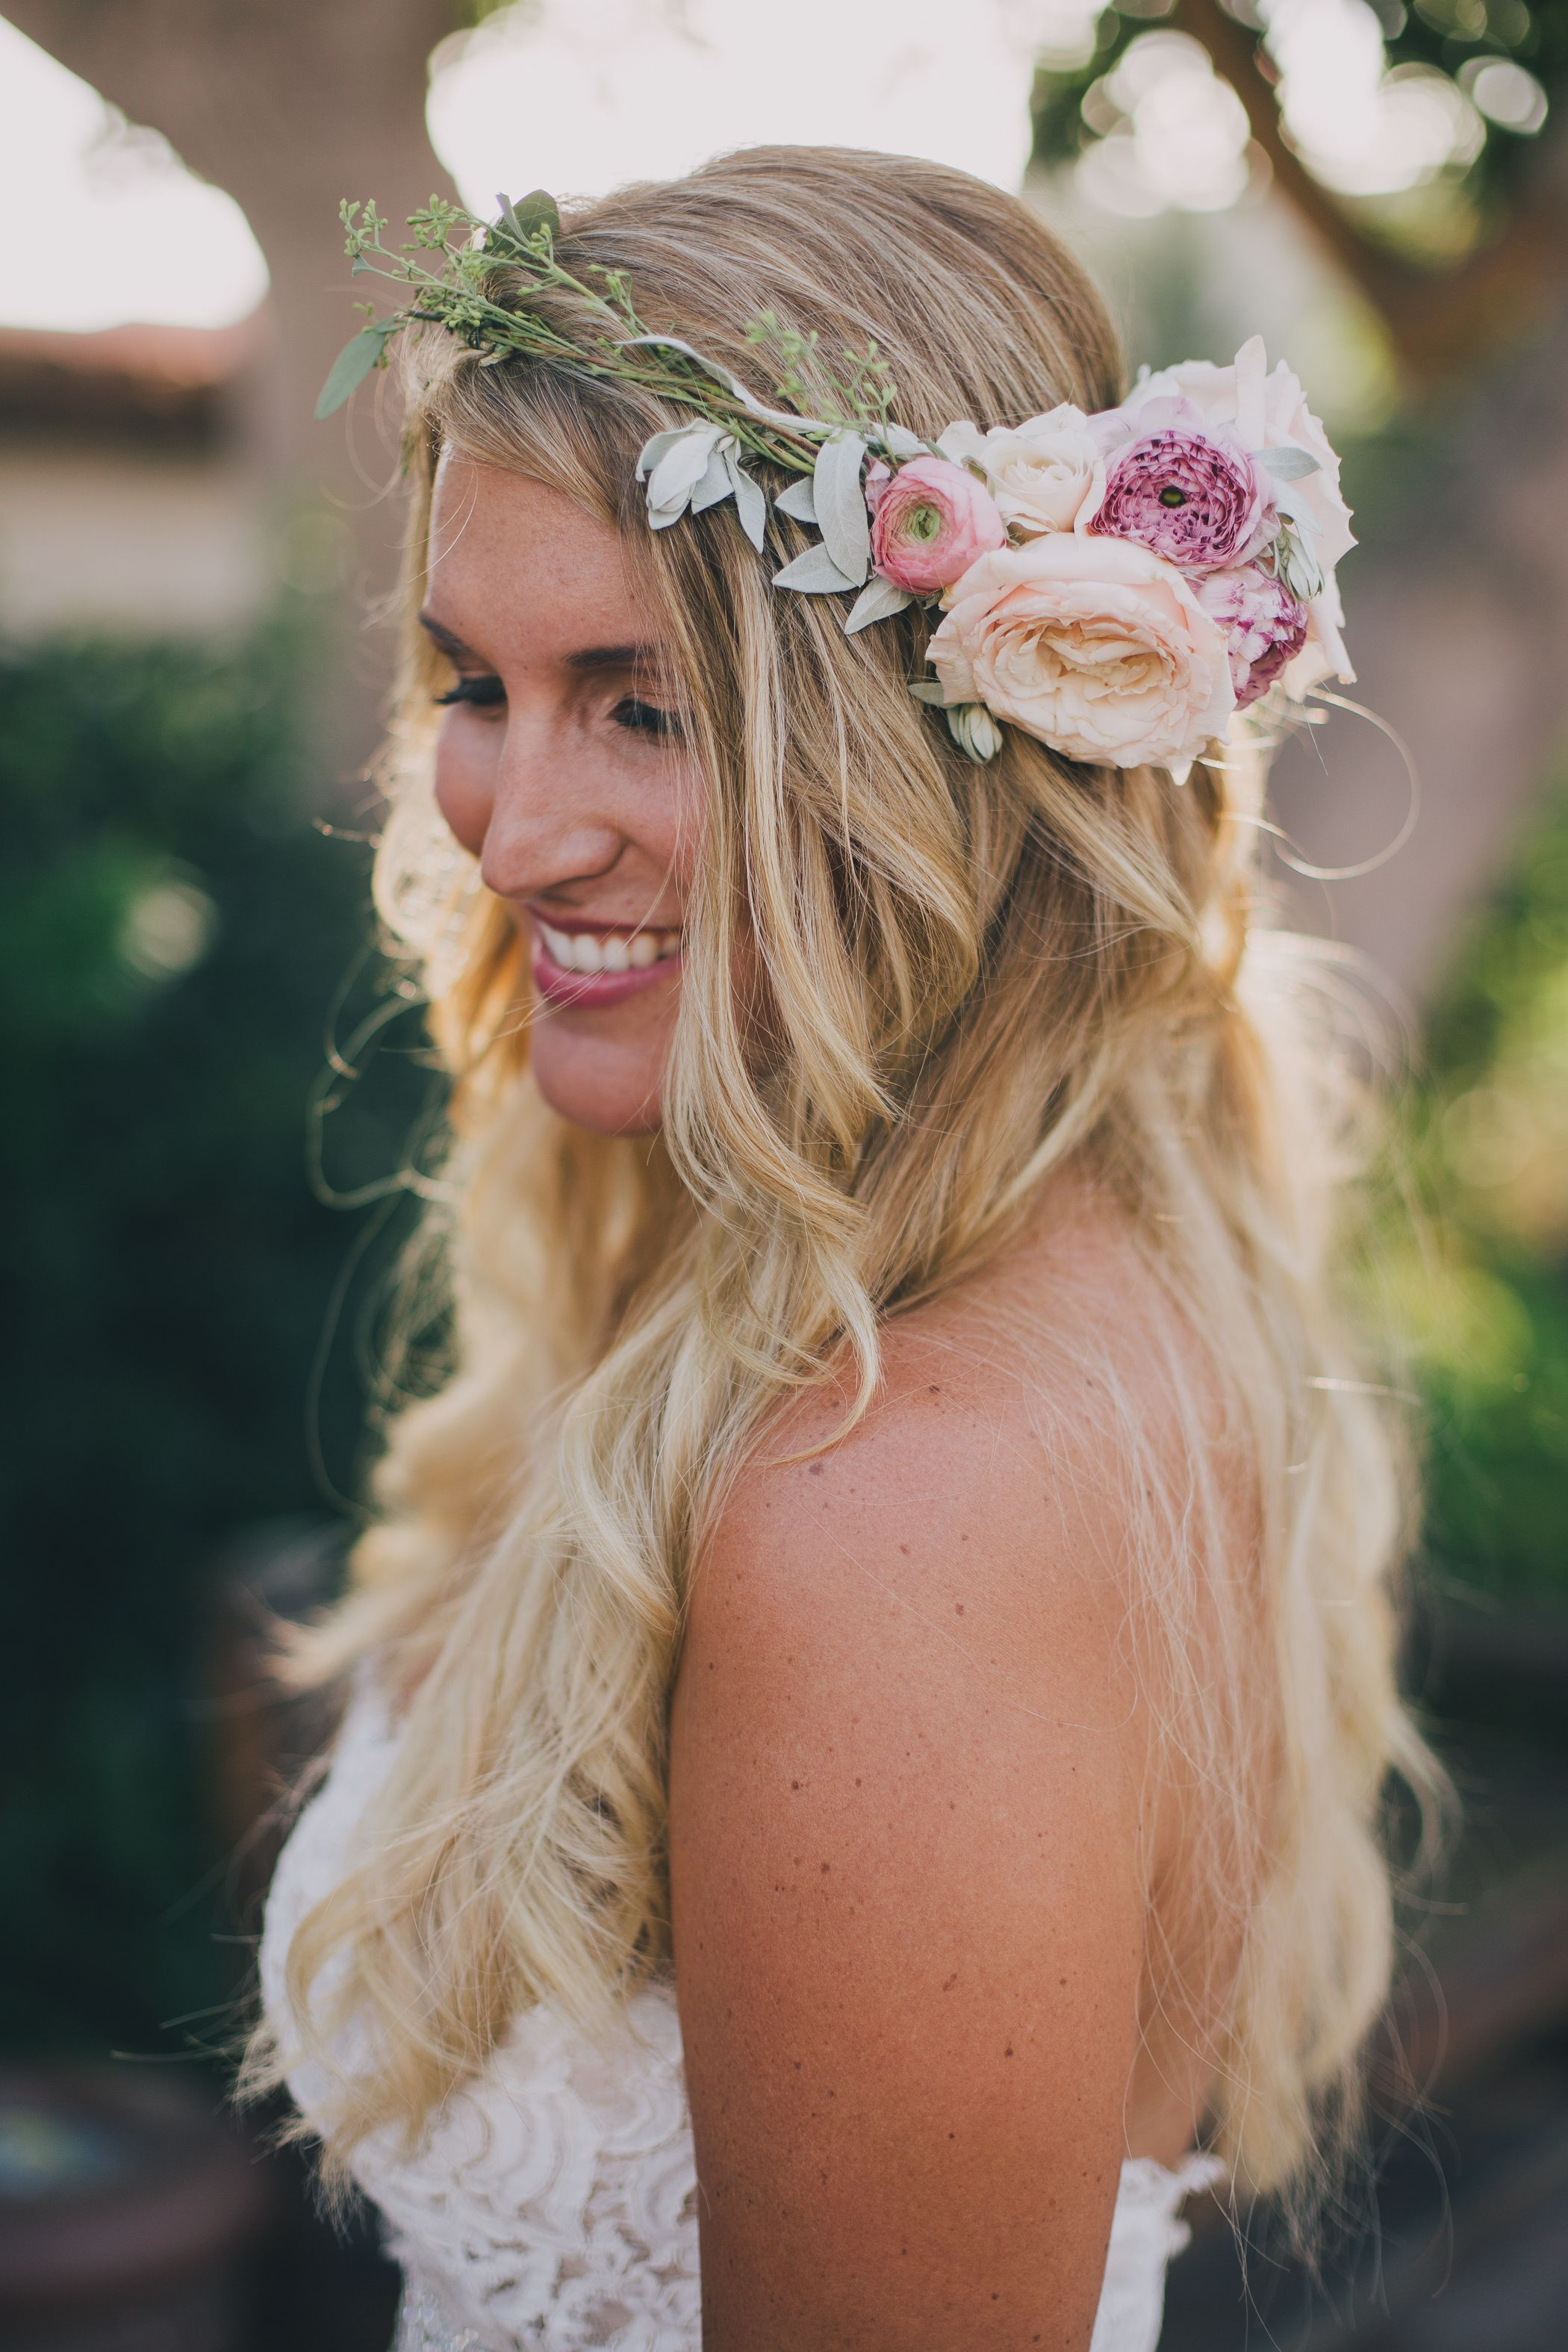 Boho bride with wedding floral crown photo by kelly stonelake